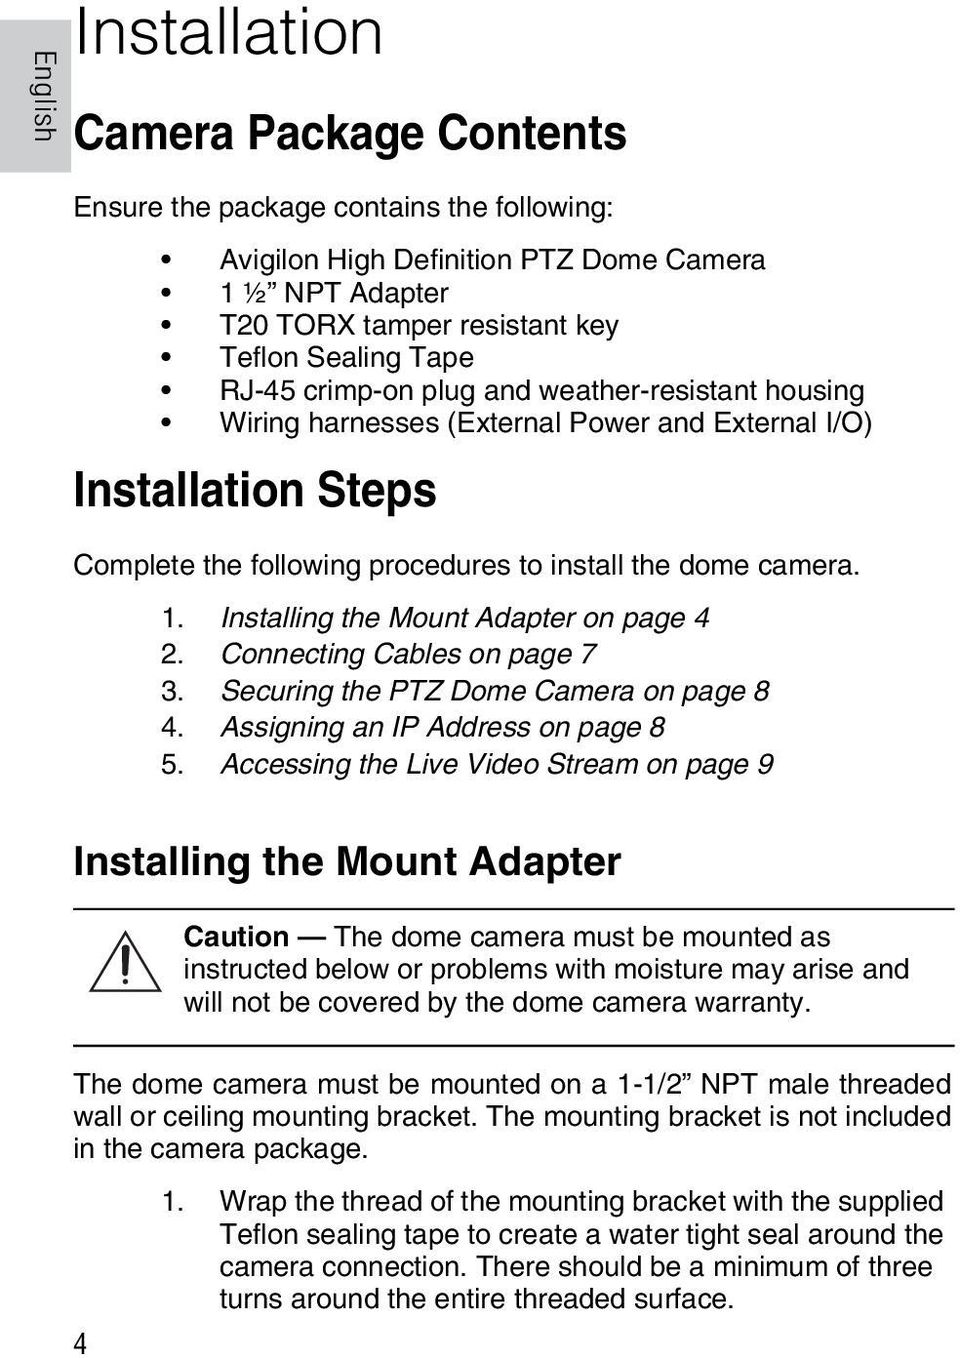 Installing the Mount Adapter on page 4 2. Connecting Cables on page 7 3. Securing the PTZ Dome Camera on page 8 4. Assigning an IP Address on page 8 5.